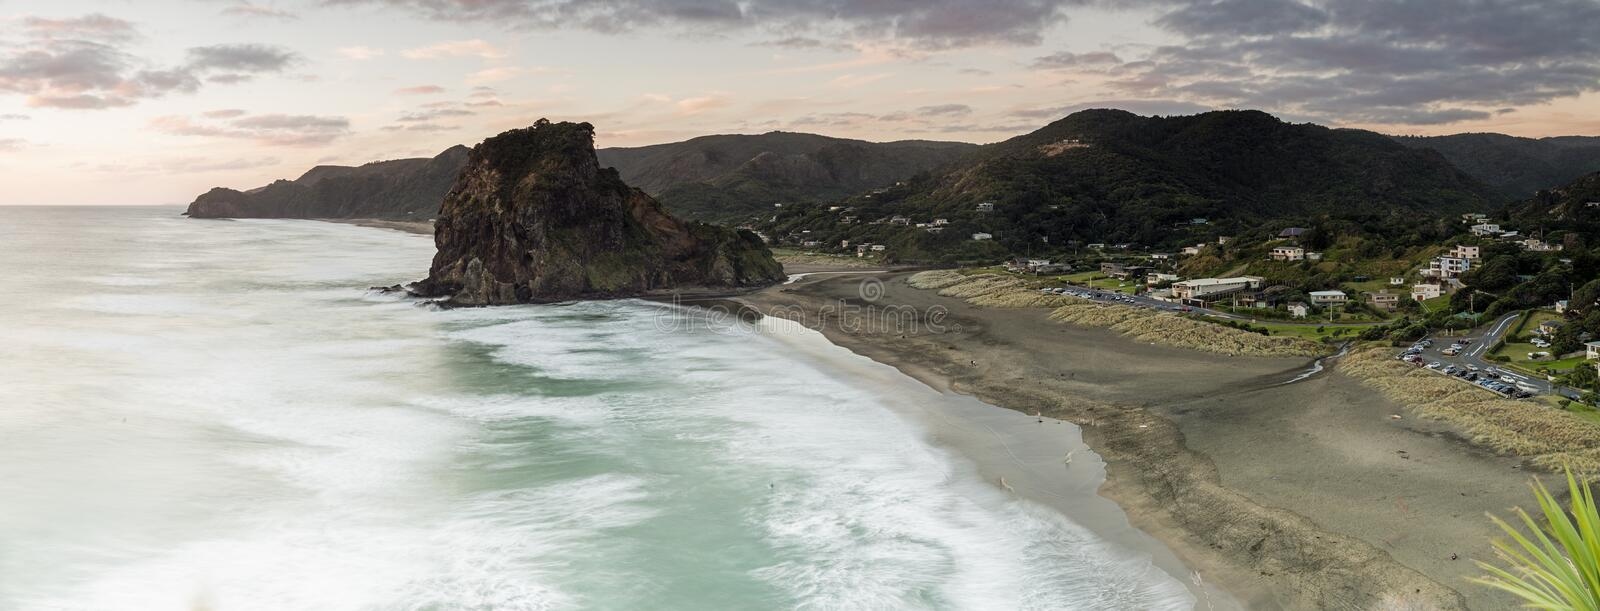 Piha Beach. Auckland, New Zealand. One of NZs most iconic west coast beaches royalty free stock photos